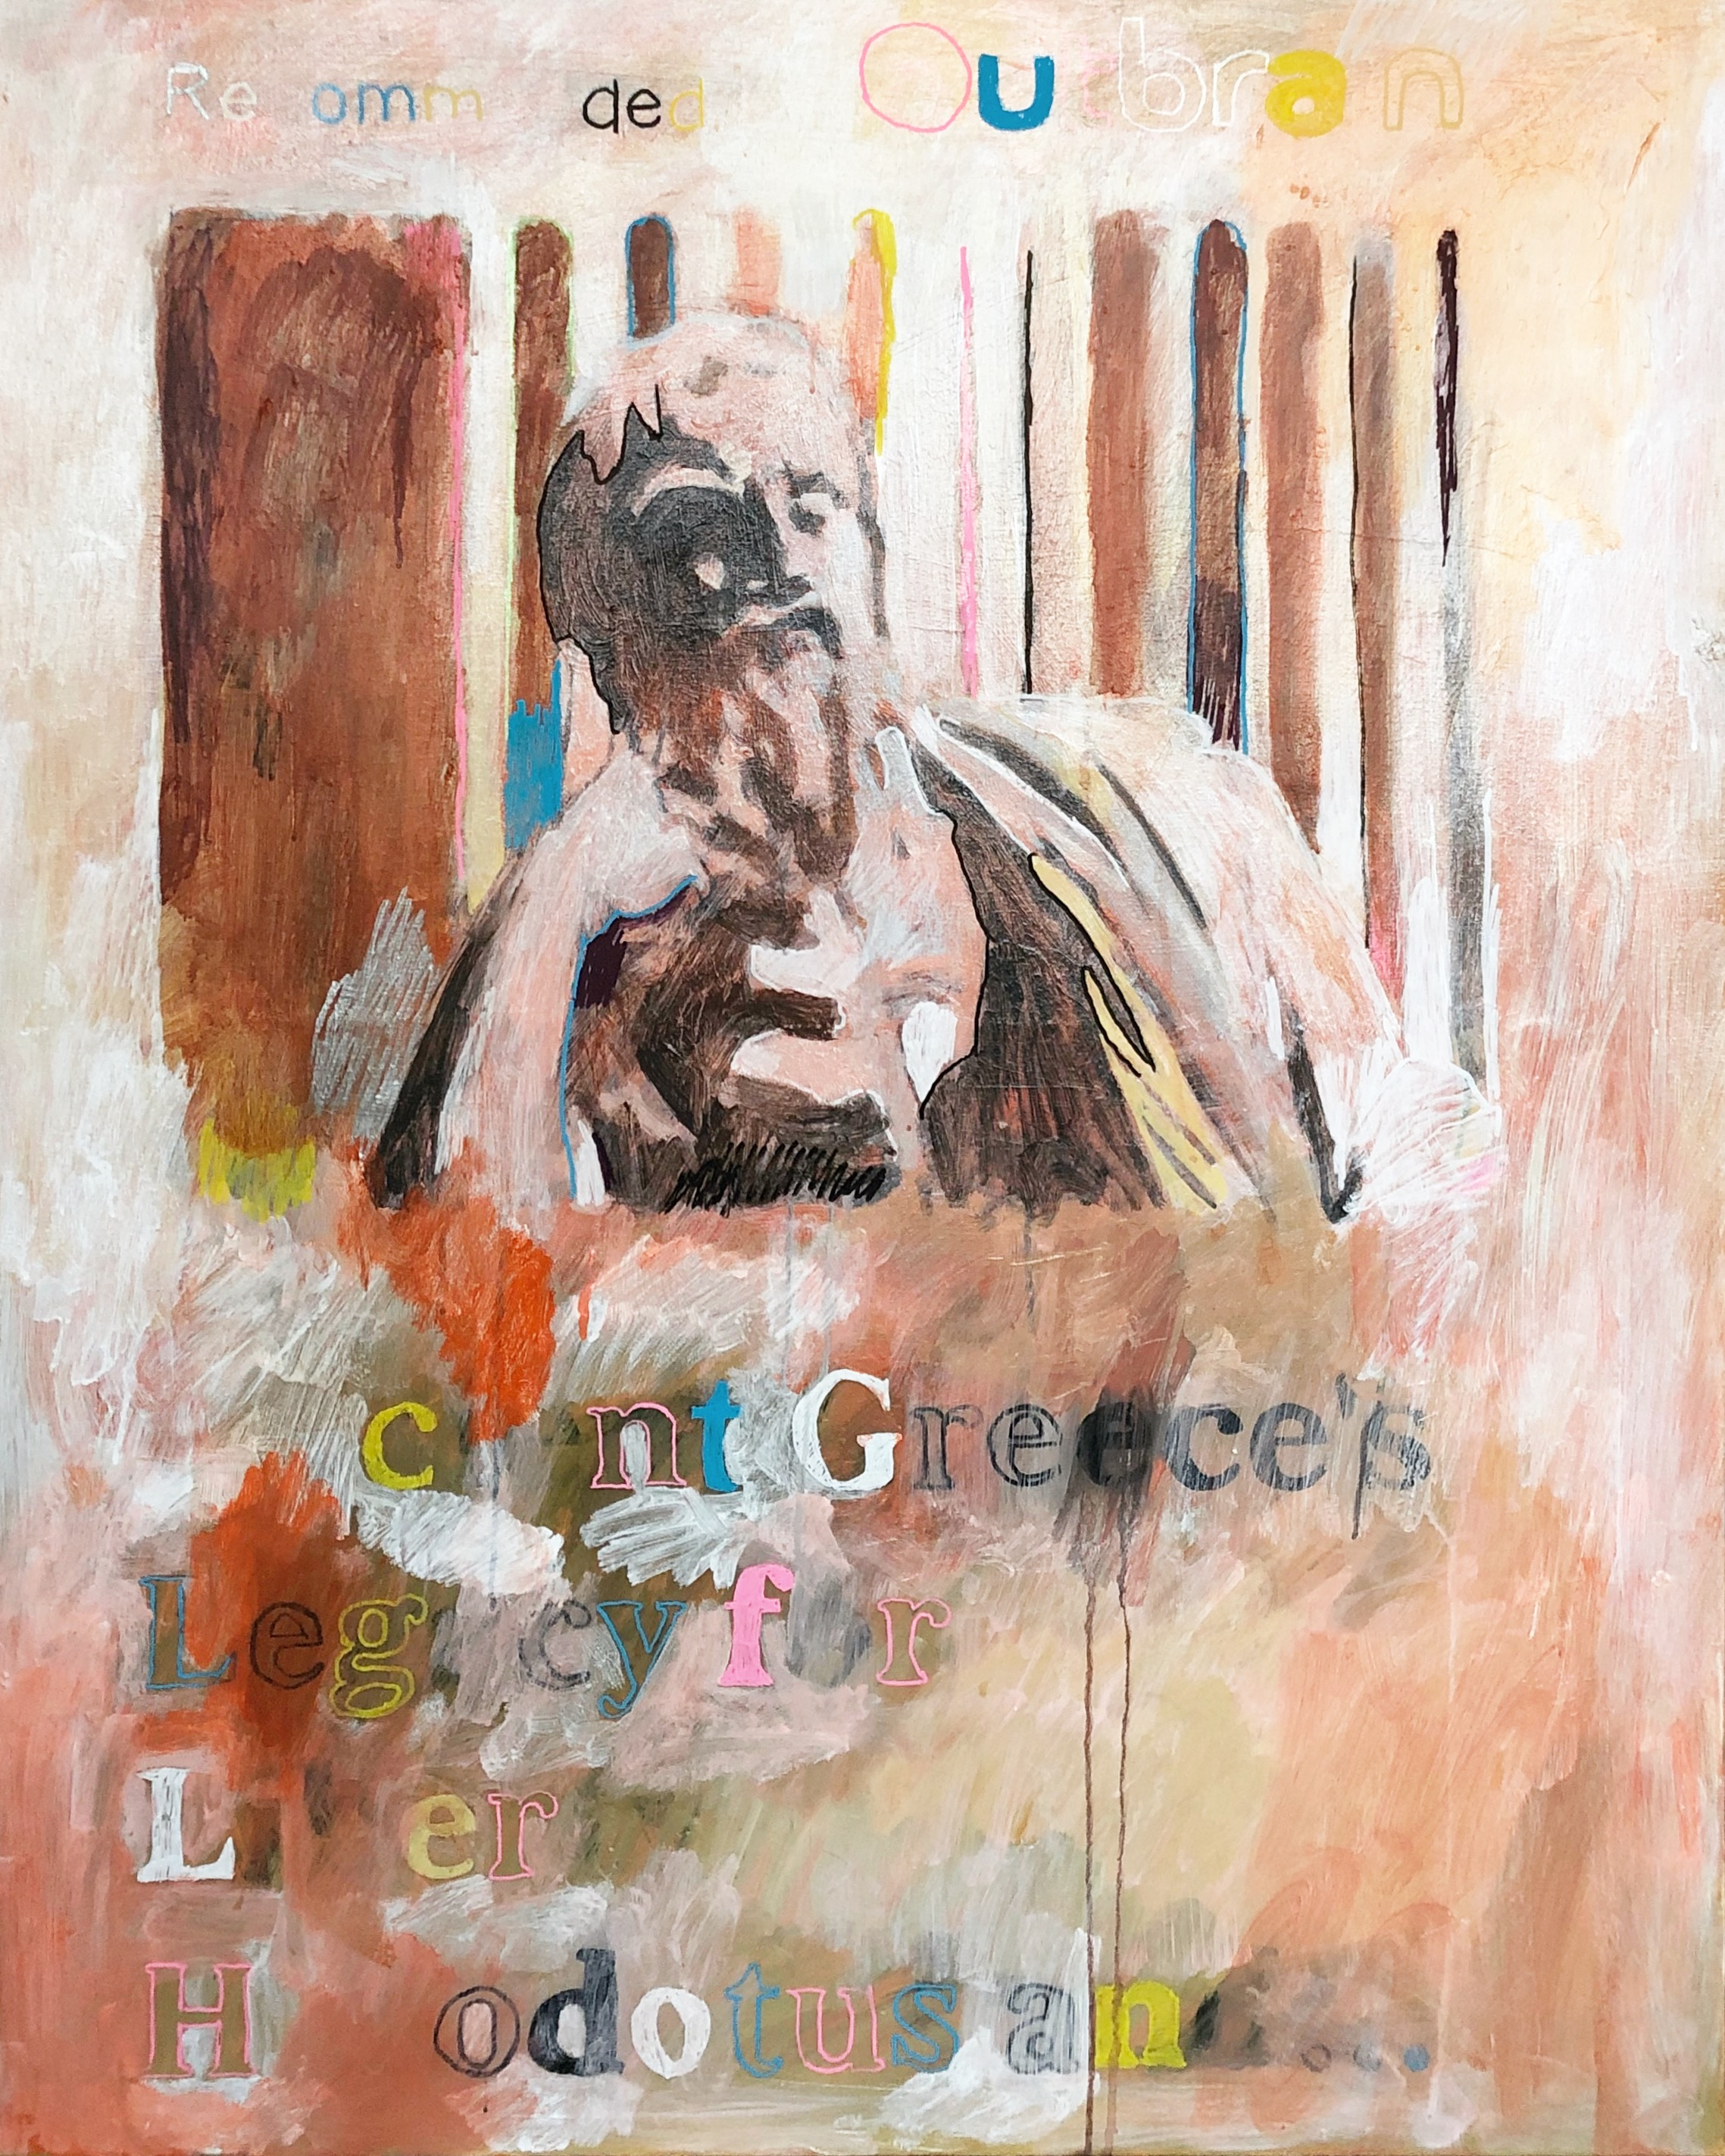 """""""Ancient Greece's Legacy for Liberty: Herodotus and..."""", 80 cm x 100 cm, acrylic on canvas."""